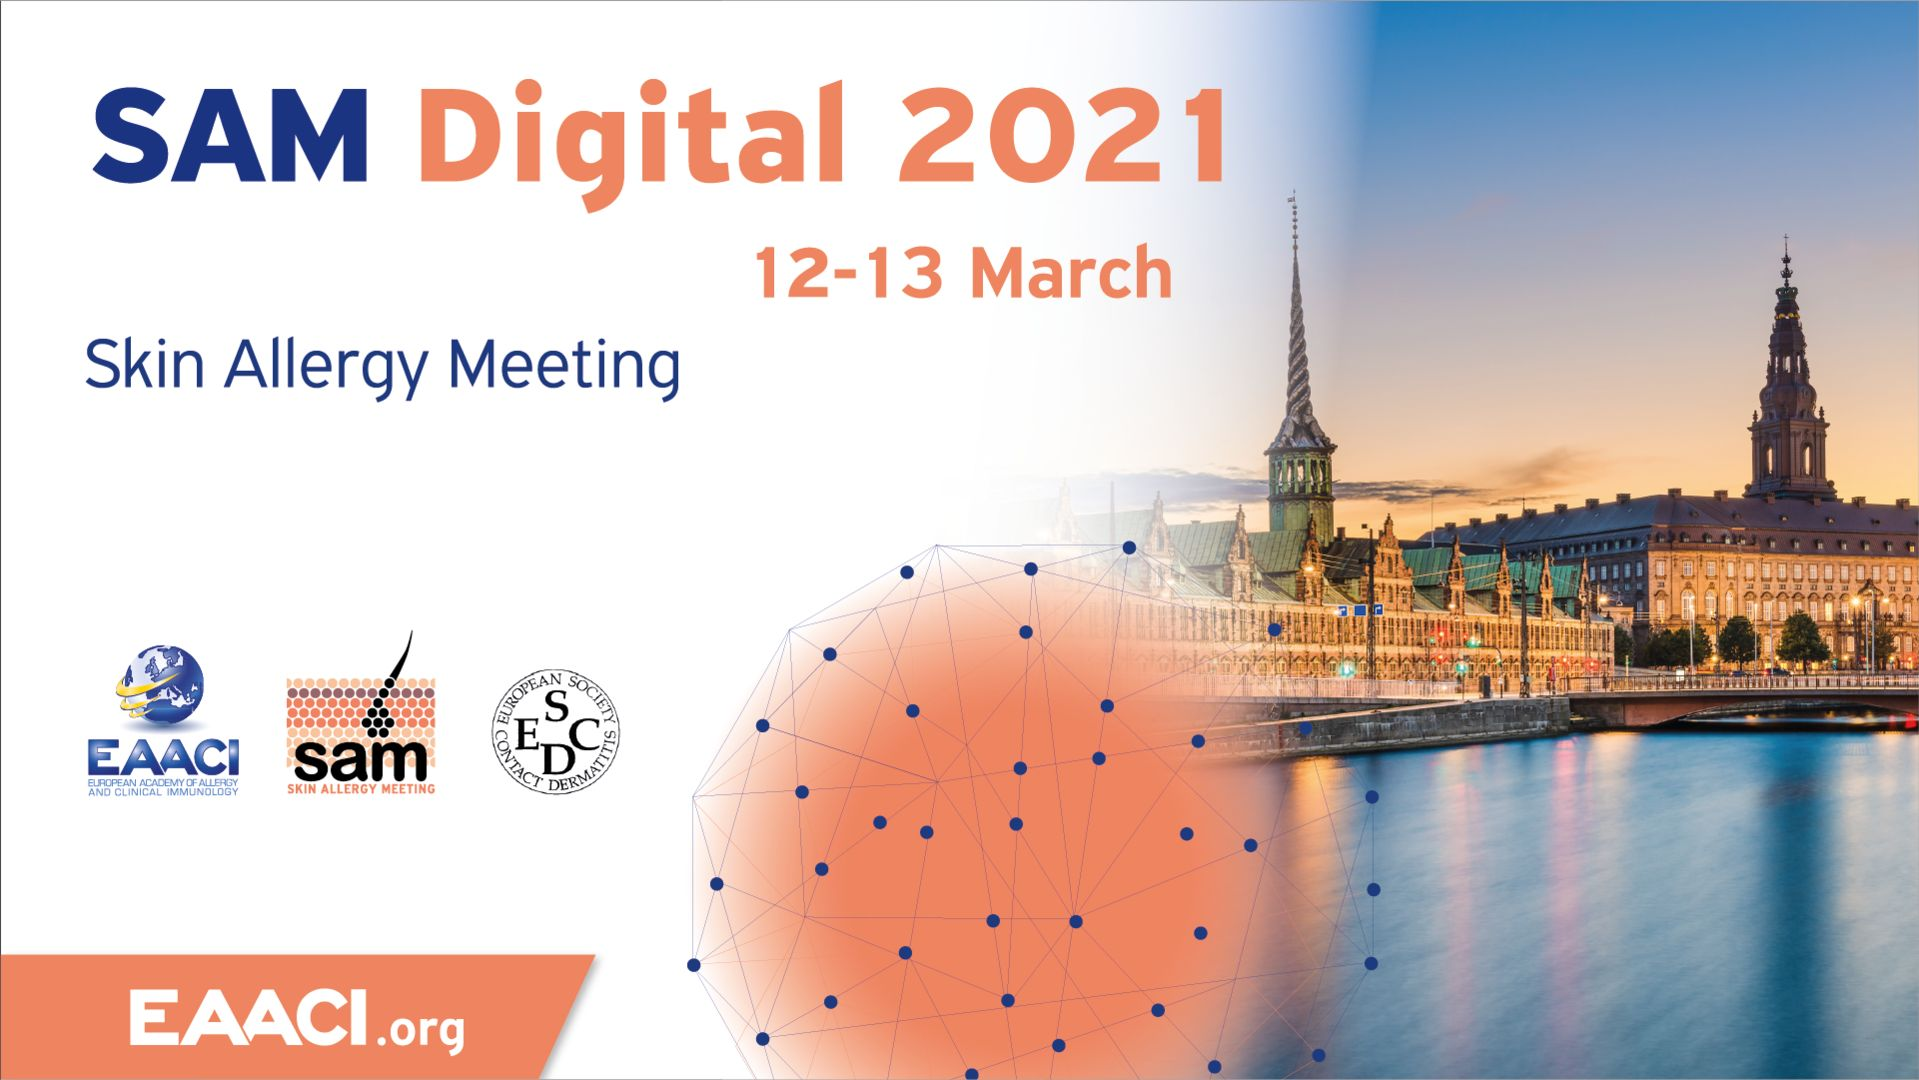 Skin Allergy Meeting (SAM Digital 2021)